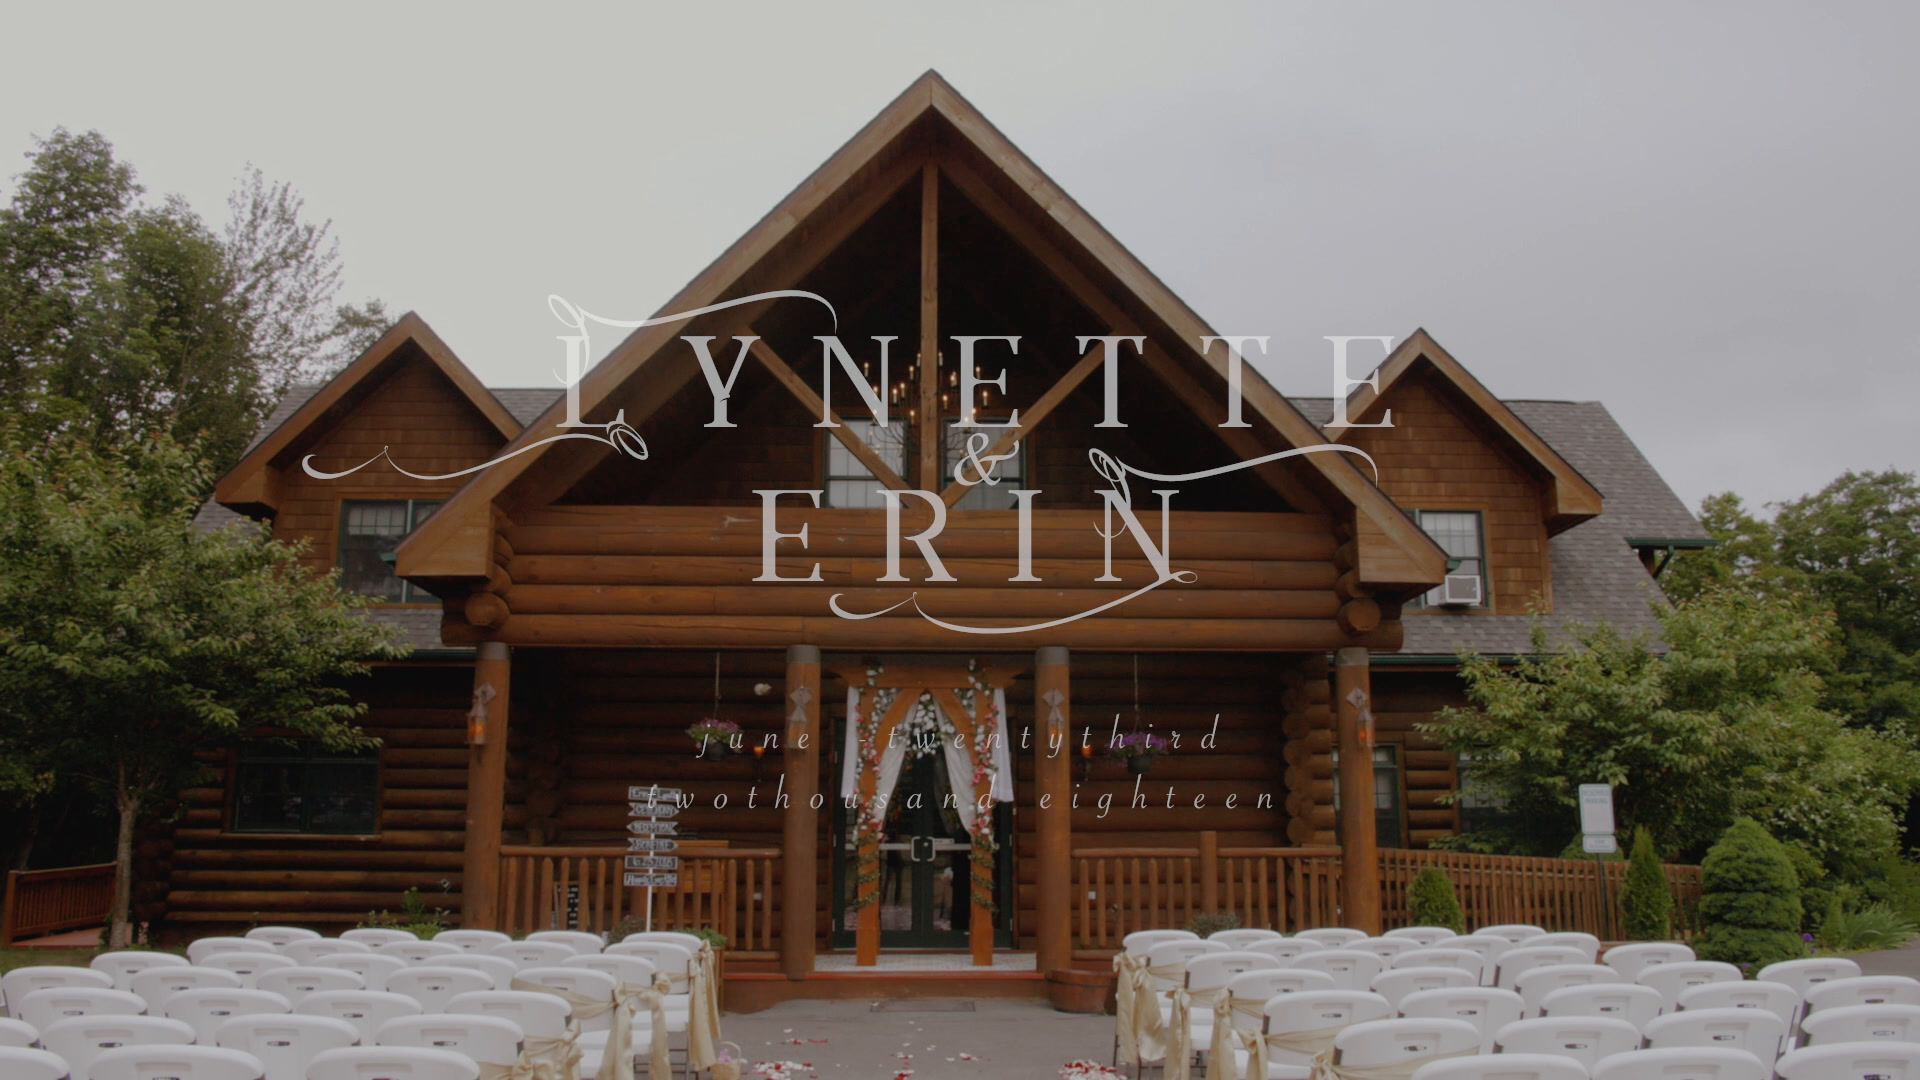 Lynette + Erin | Waymart, Pennsylvania | the lodge at keen lake